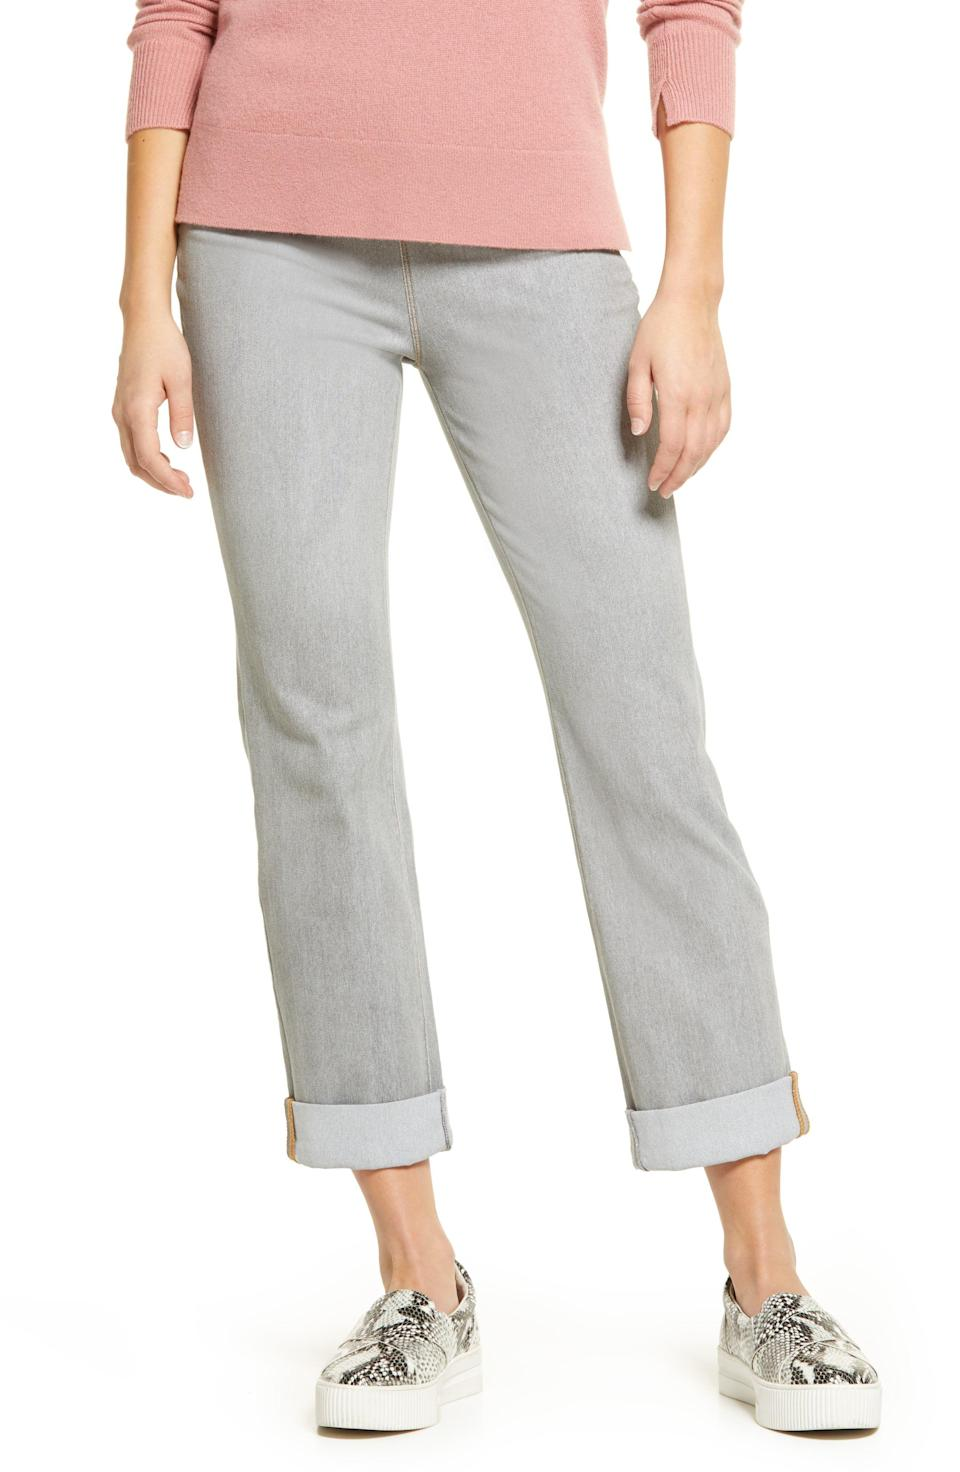 """<p><strong>LYSSE</strong></p><p>nordstrom.com</p><p><strong>$98.00</strong></p><p><a href=""""https://go.redirectingat.com?id=74968X1596630&url=https%3A%2F%2Fwww.nordstrom.com%2Fs%2Flysse-boyfriend-denim-leggings%2F4595876&sref=https%3A%2F%2Fwww.womenshealthmag.com%2Flife%2Fg37080961%2Fbest-boyfriend-jeans%2F"""" rel=""""nofollow noopener"""" target=""""_blank"""" data-ylk=""""slk:Shop Now"""" class=""""link rapid-noclick-resp"""">Shop Now</a></p><p>If you're trying to wear jeans that don't actually feel like jeans, you'll want a pair of these in each of the three washes it's available in. They have the feel of leggings, feature a control compression waist for support, and have a straight, elegant shape. Nobody will know (or believe!) how comfortable you actually are. </p>"""